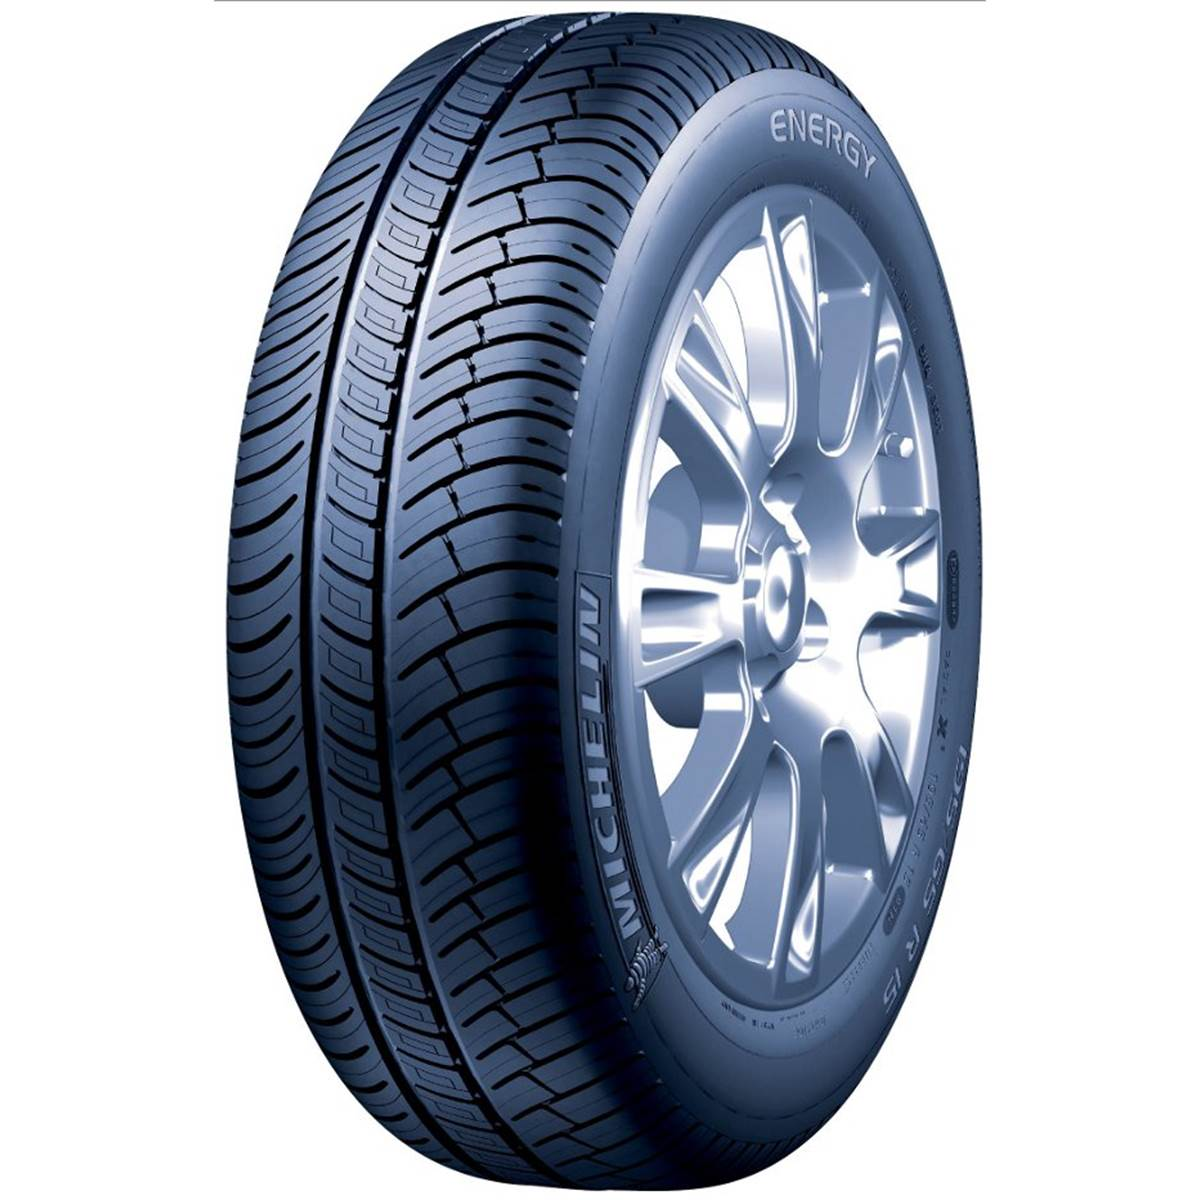 Pneu Michelin 185/70R13 86T Energy E3B 1